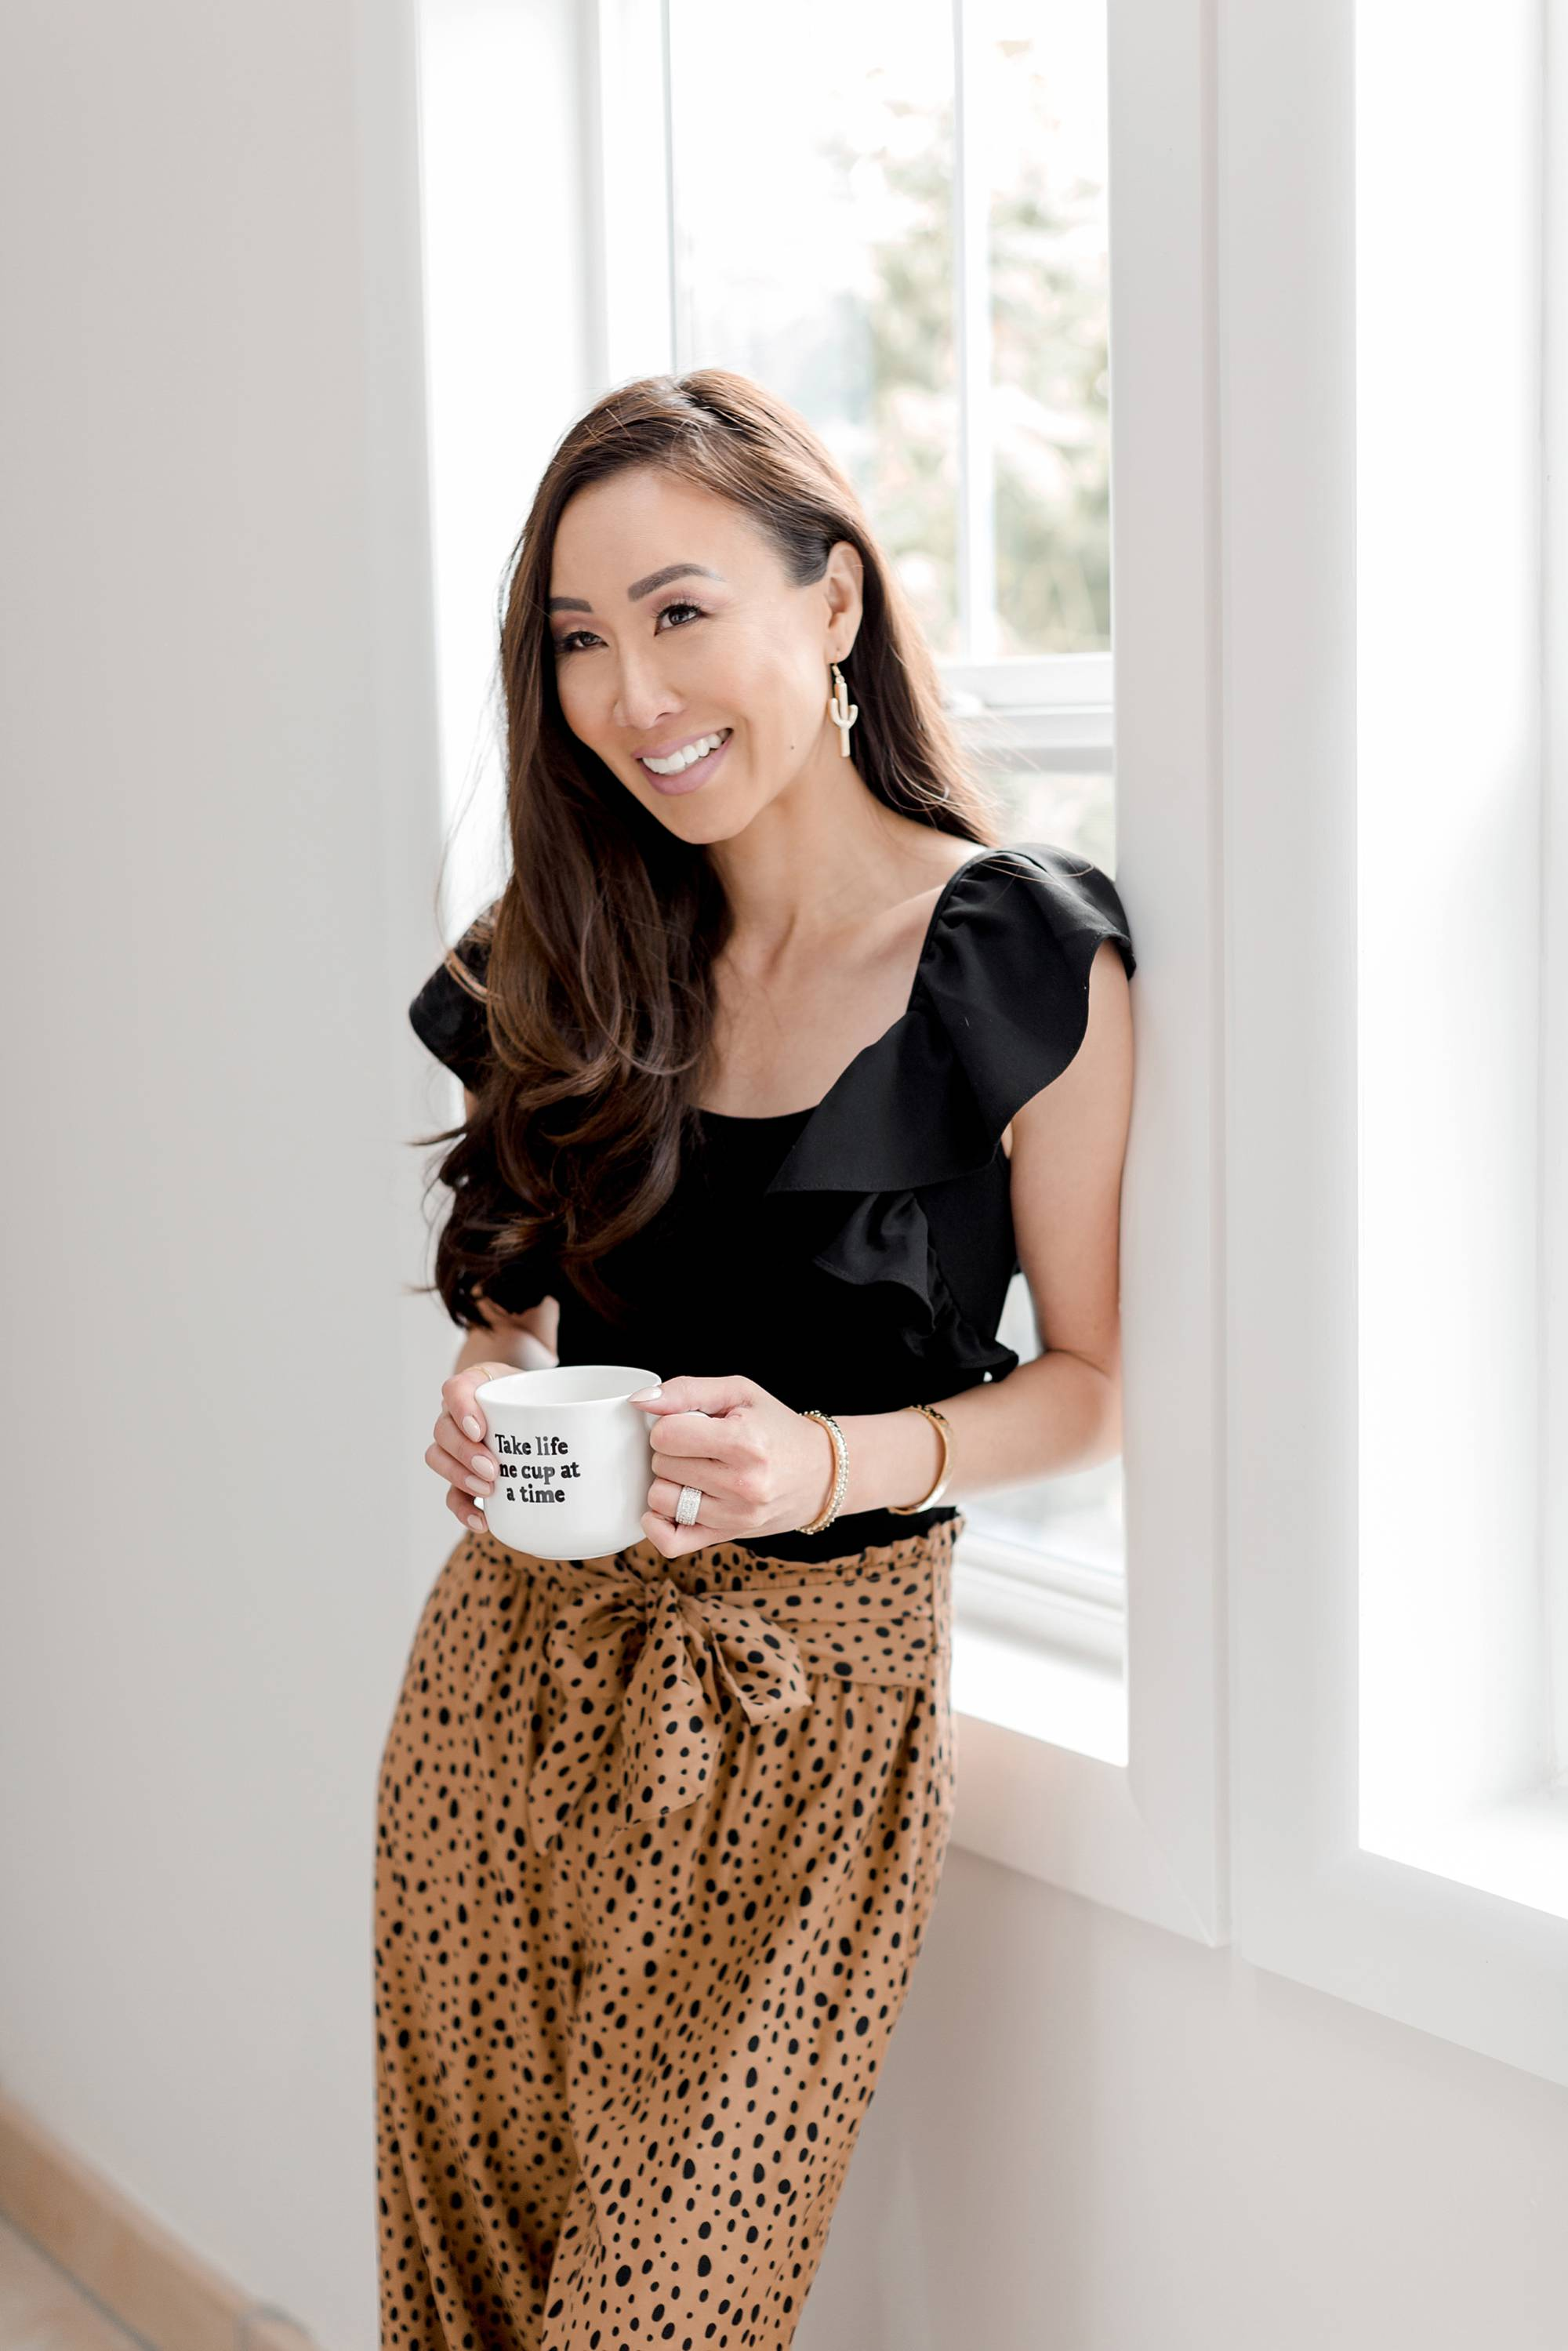 take life one cup at a time mug, leopard print pants from Anthropologie and ruffle top, cactus earrings on lifestyle blogger Diana Elizabeth against the window